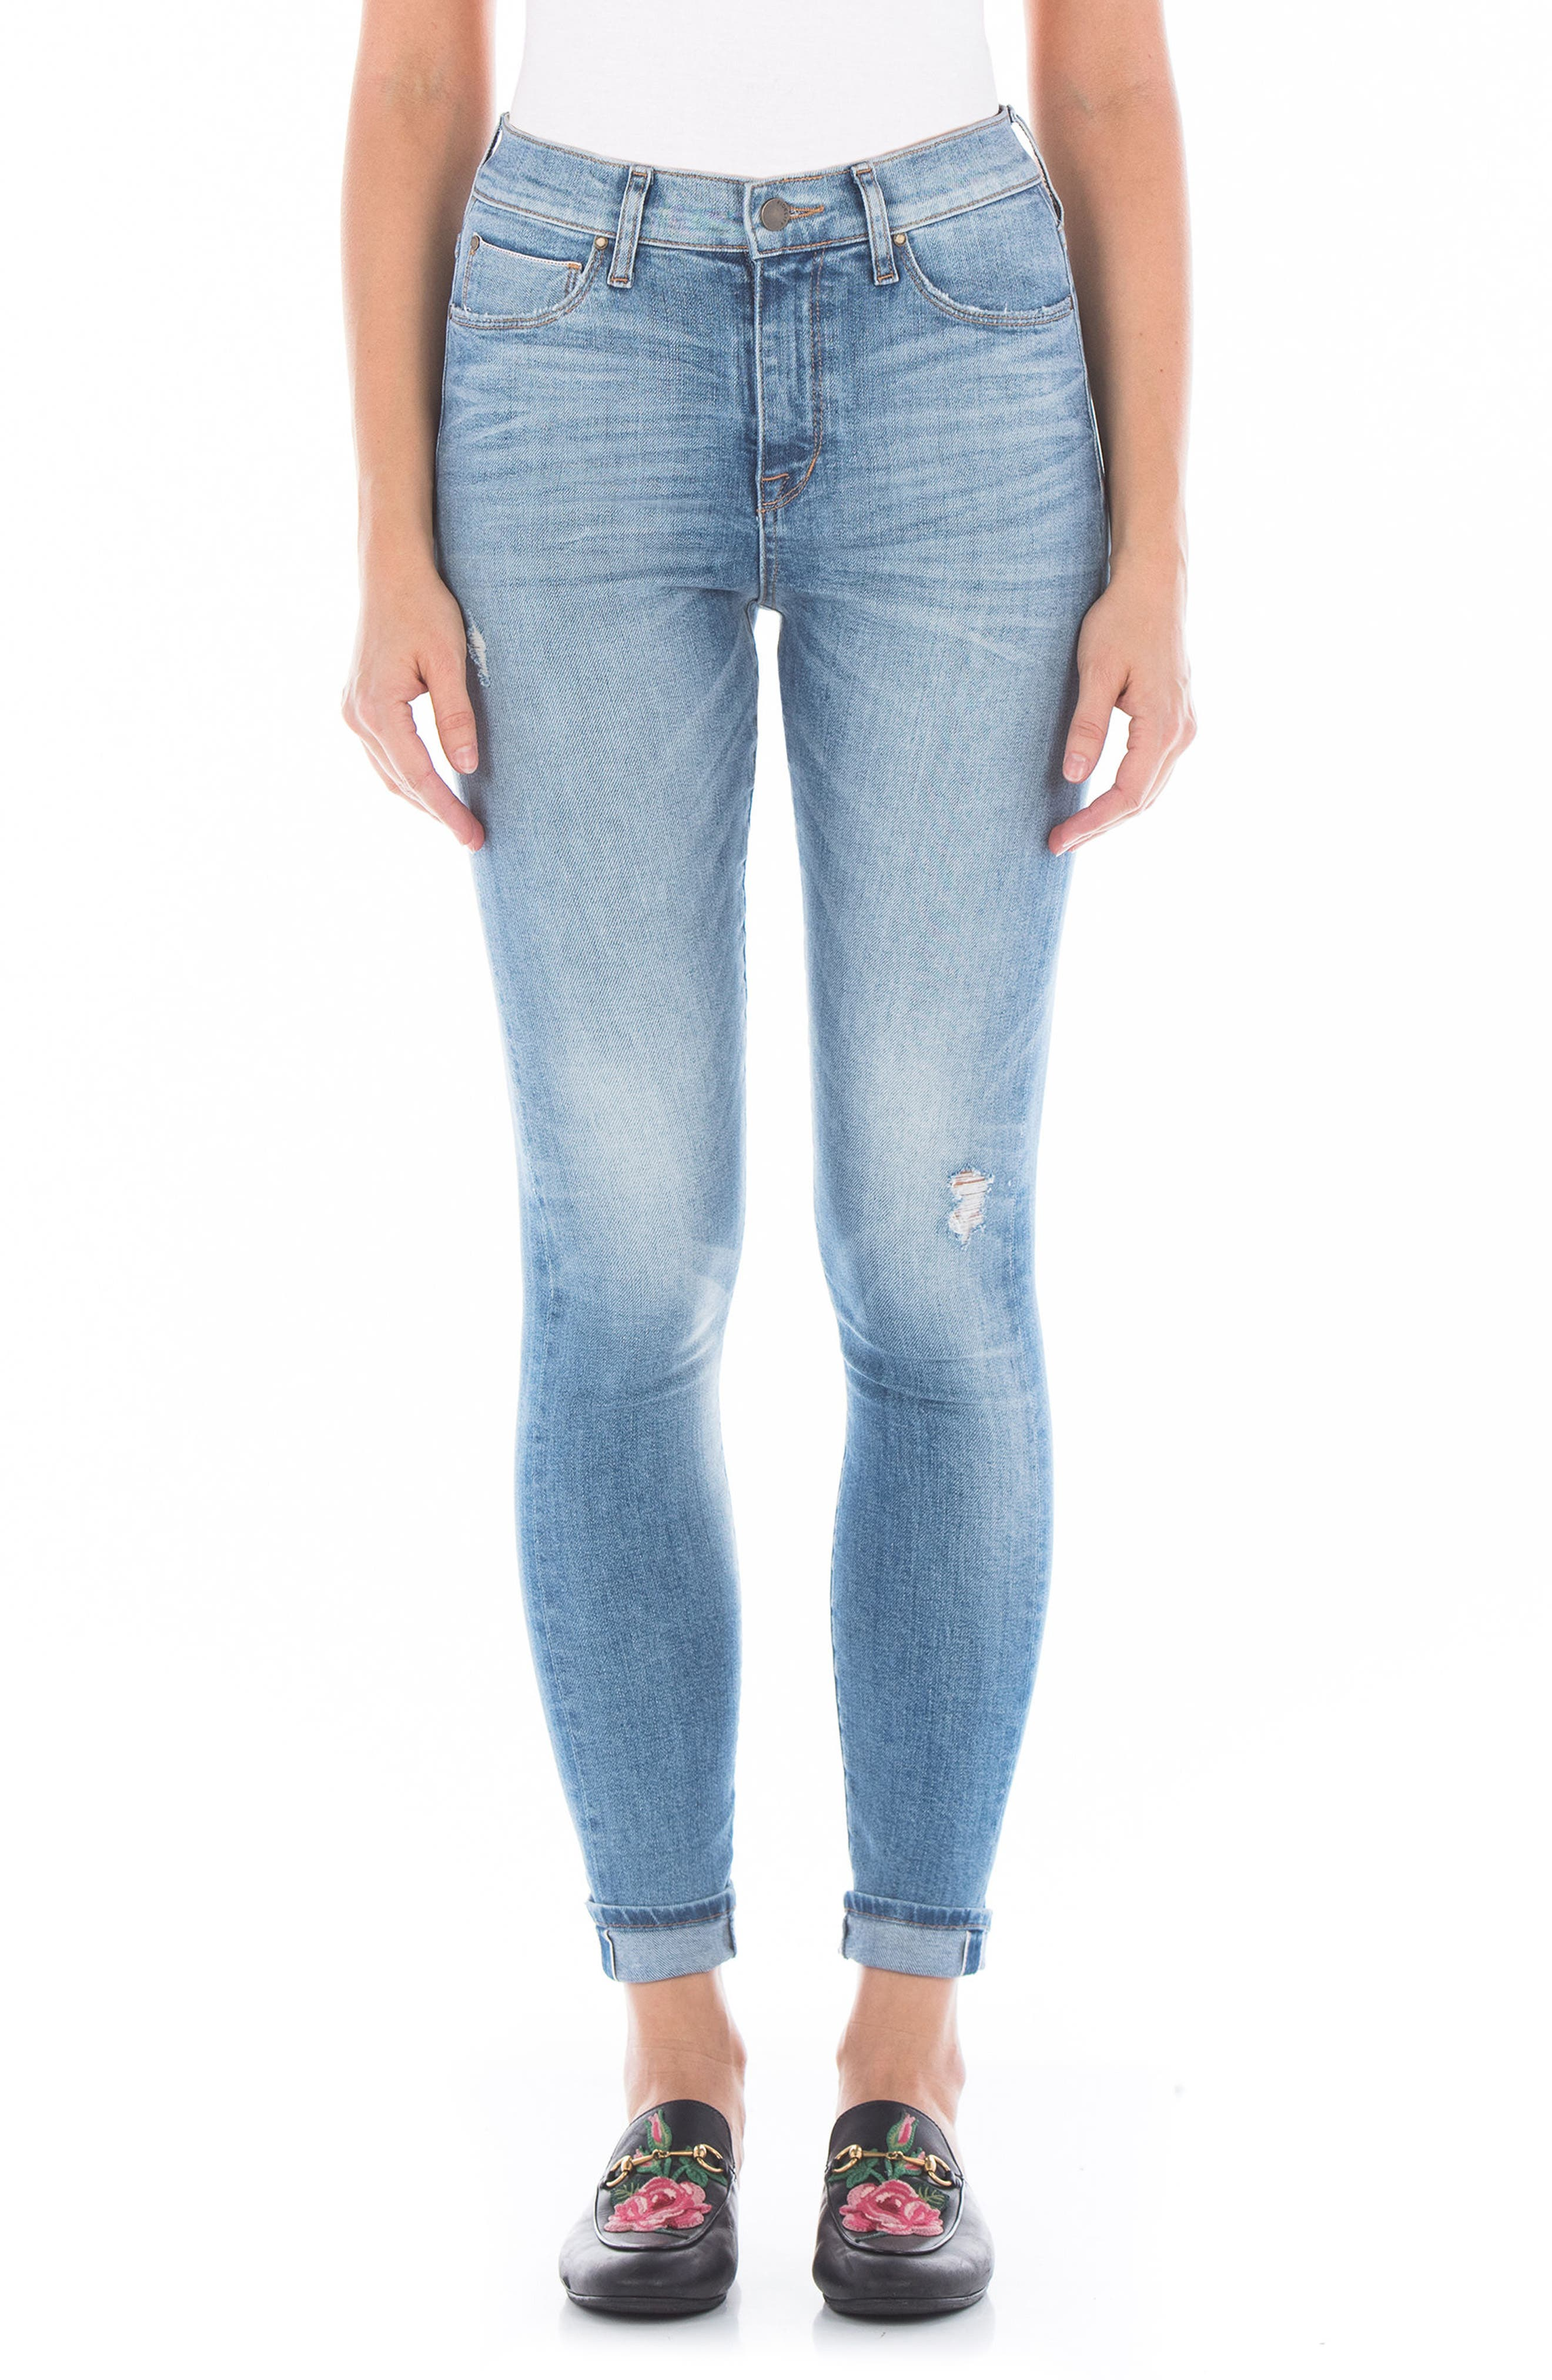 Gwen High Waist Skinny Jeans,                         Main,                         color, 76 Summer